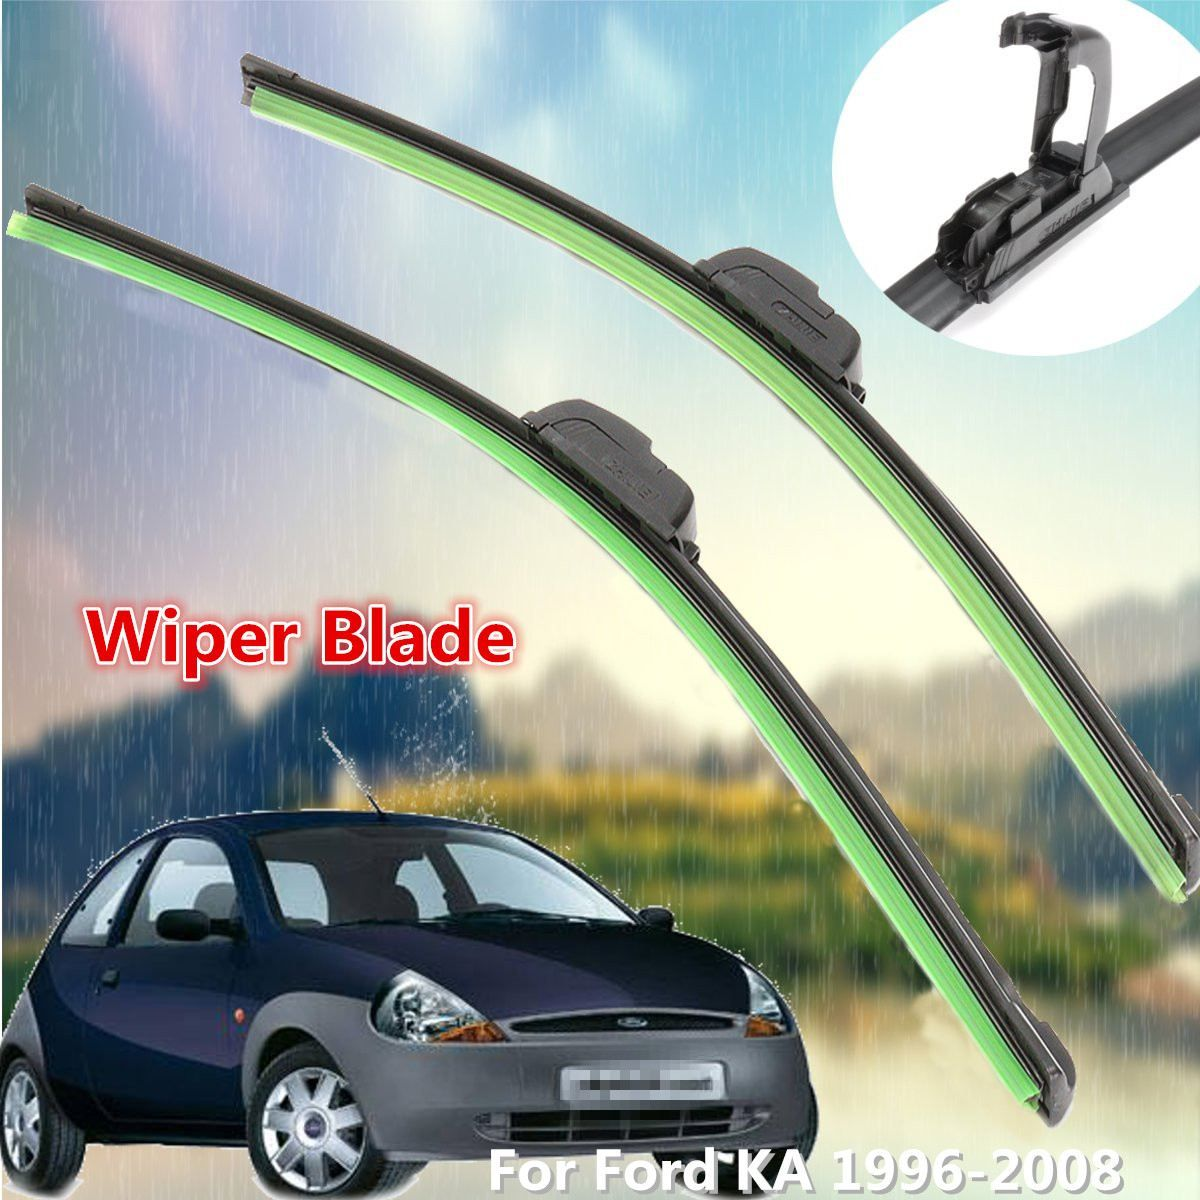 Front Windscreen 19 17 Flat Wiper Blade For Ford KA 1996-2008 Car Replacement